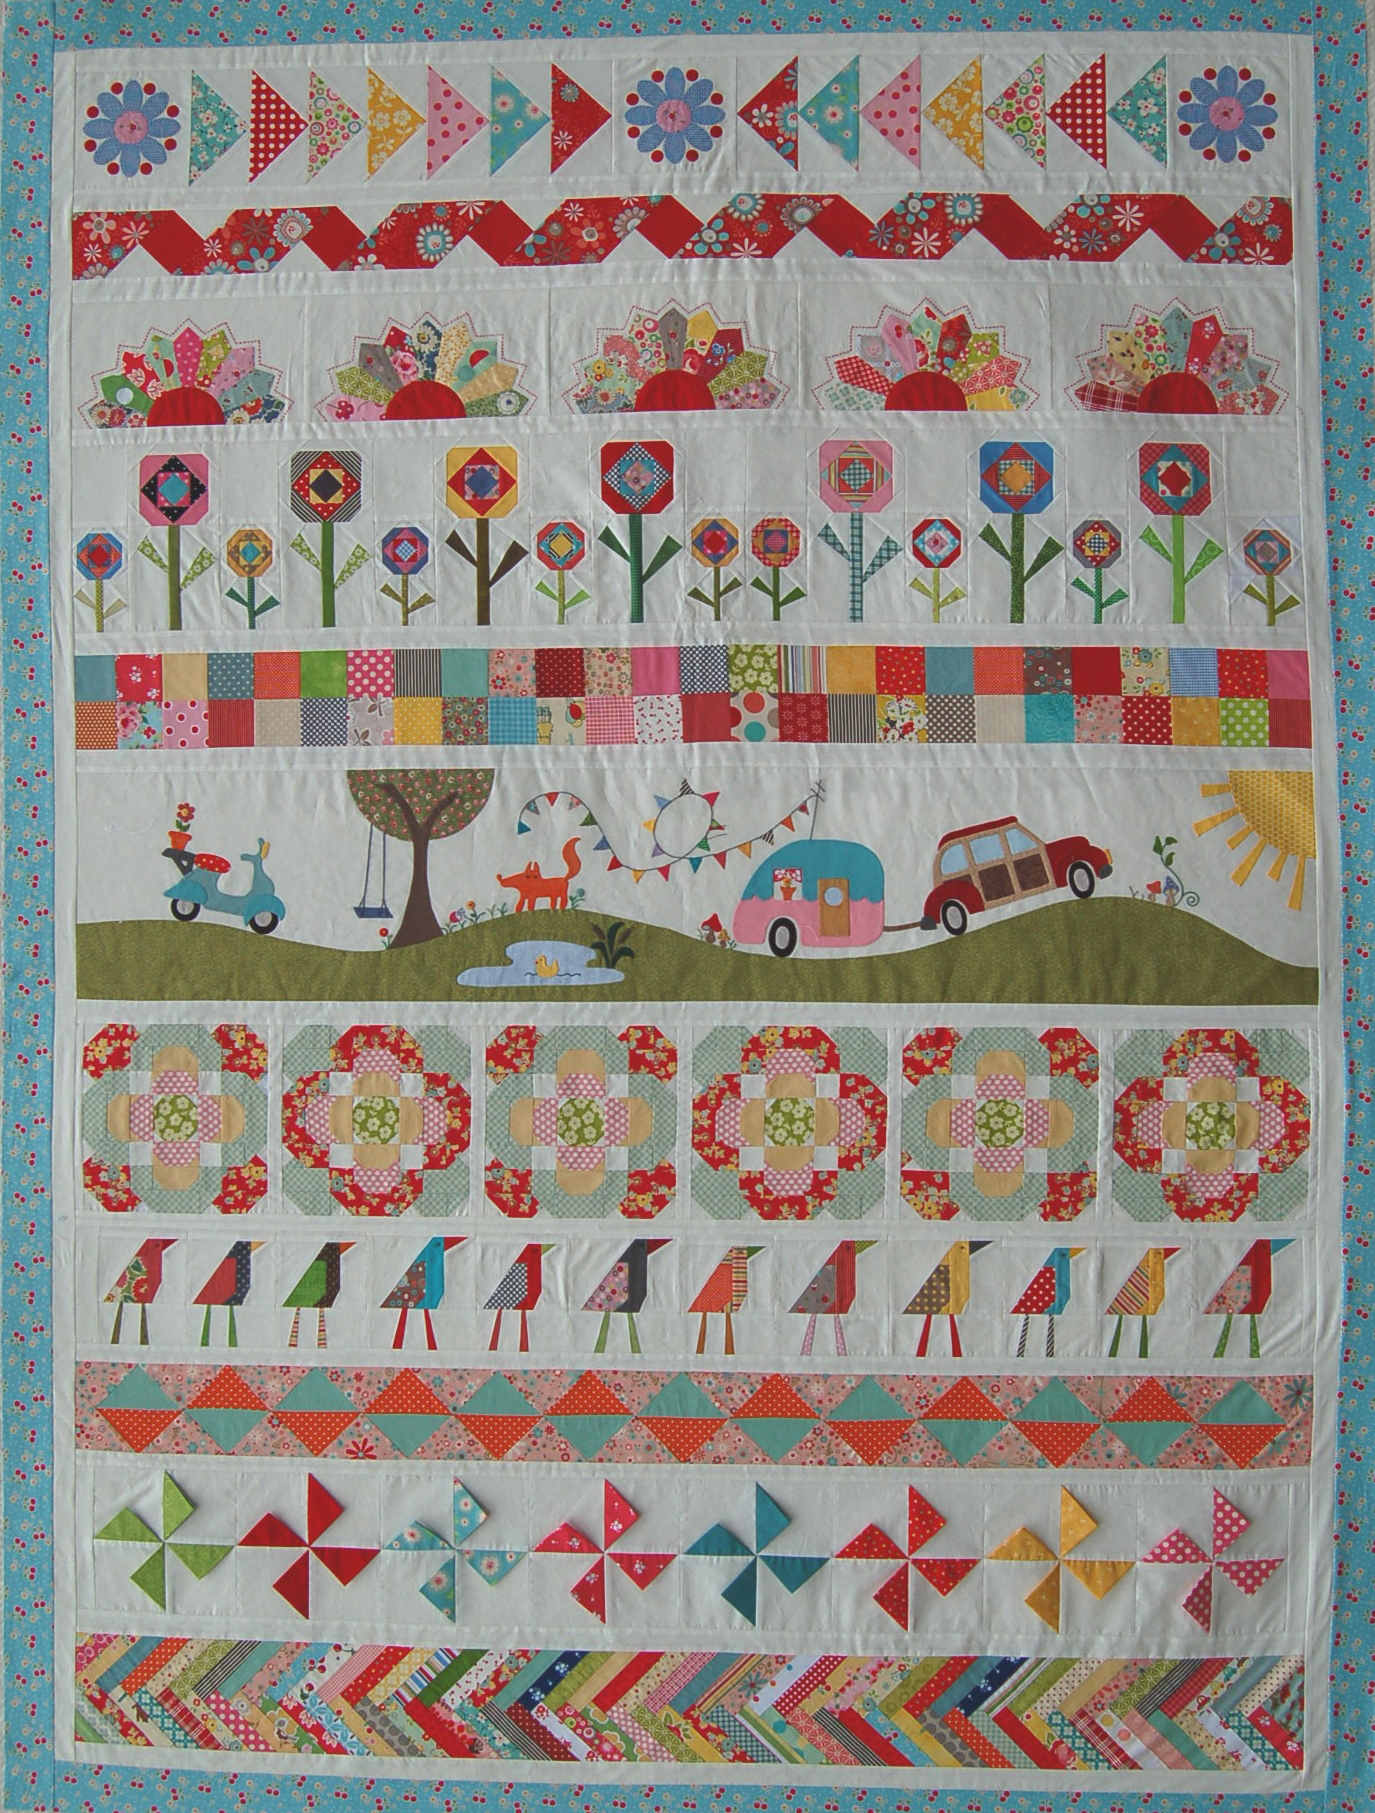 The Piper S Girls Row By Row Quilt